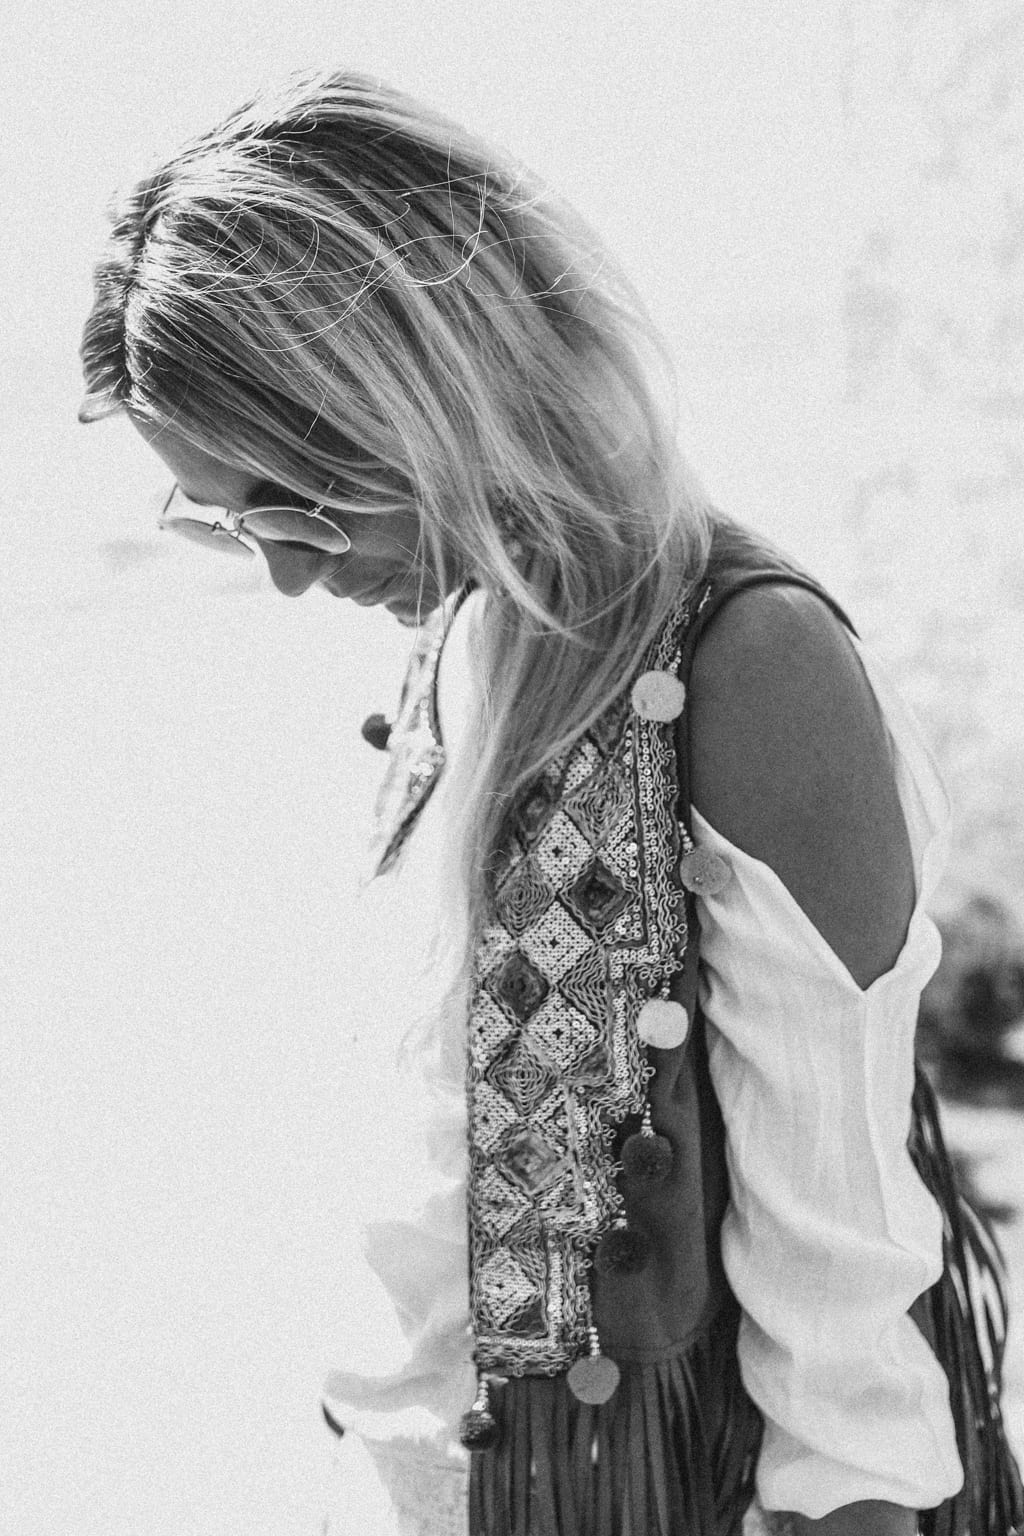 CK1605_Constantly-K-Karin-Kaswurm-Georg-Teigl-Ibiza-Holiday-Spain-Blog-Street-Style-Fashion-Boho-Chic-Beach-Style-7703